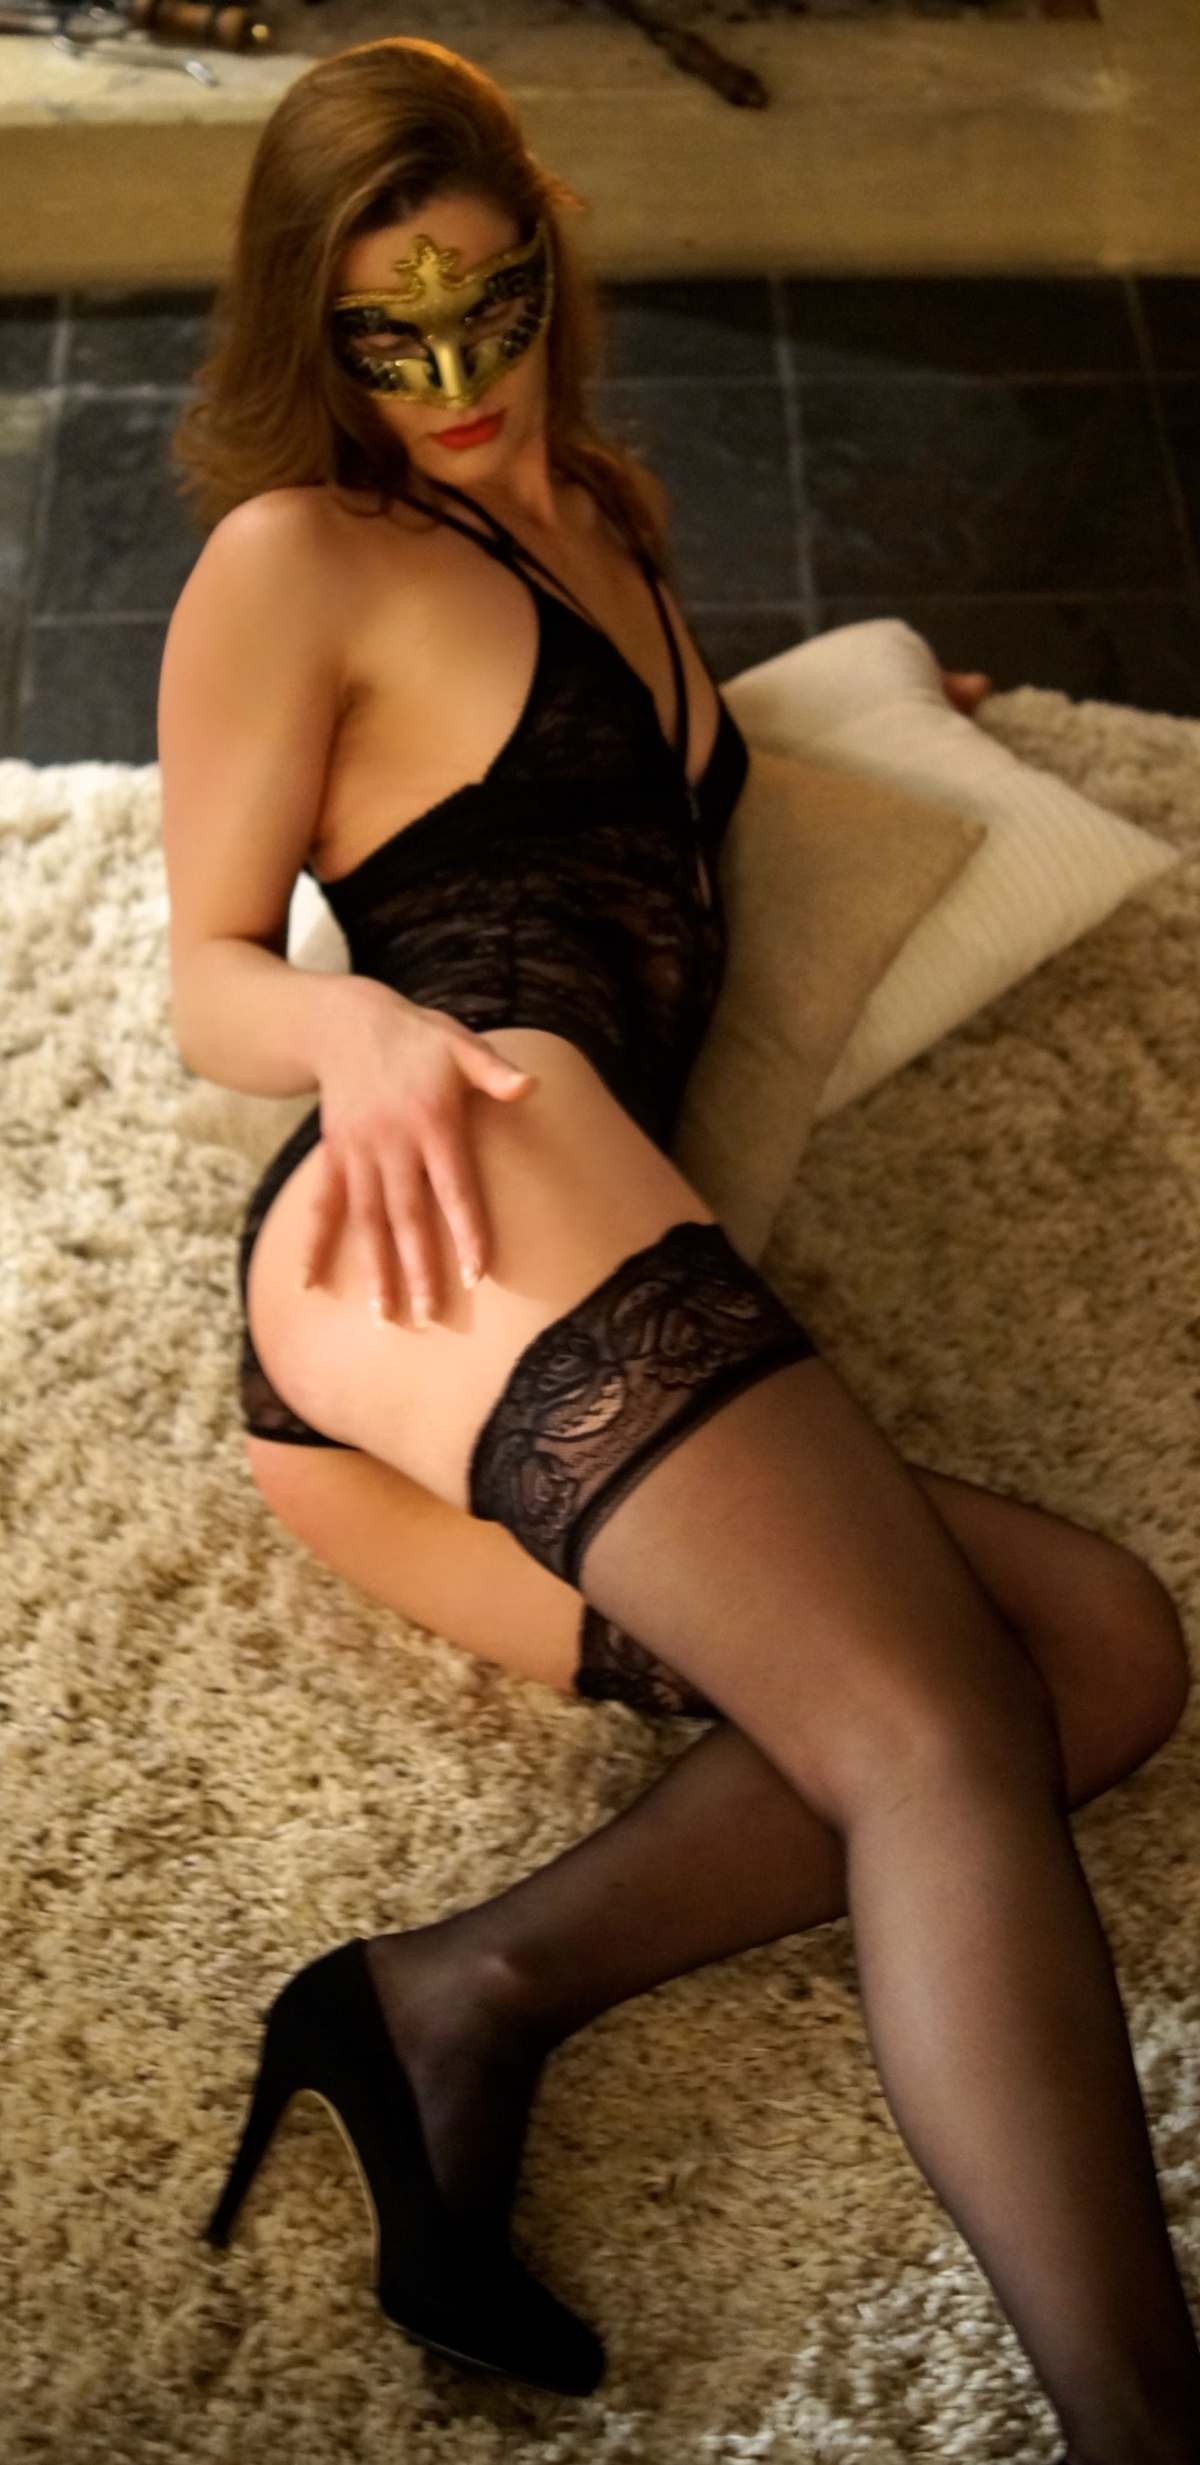 trondheim escort prive escorts